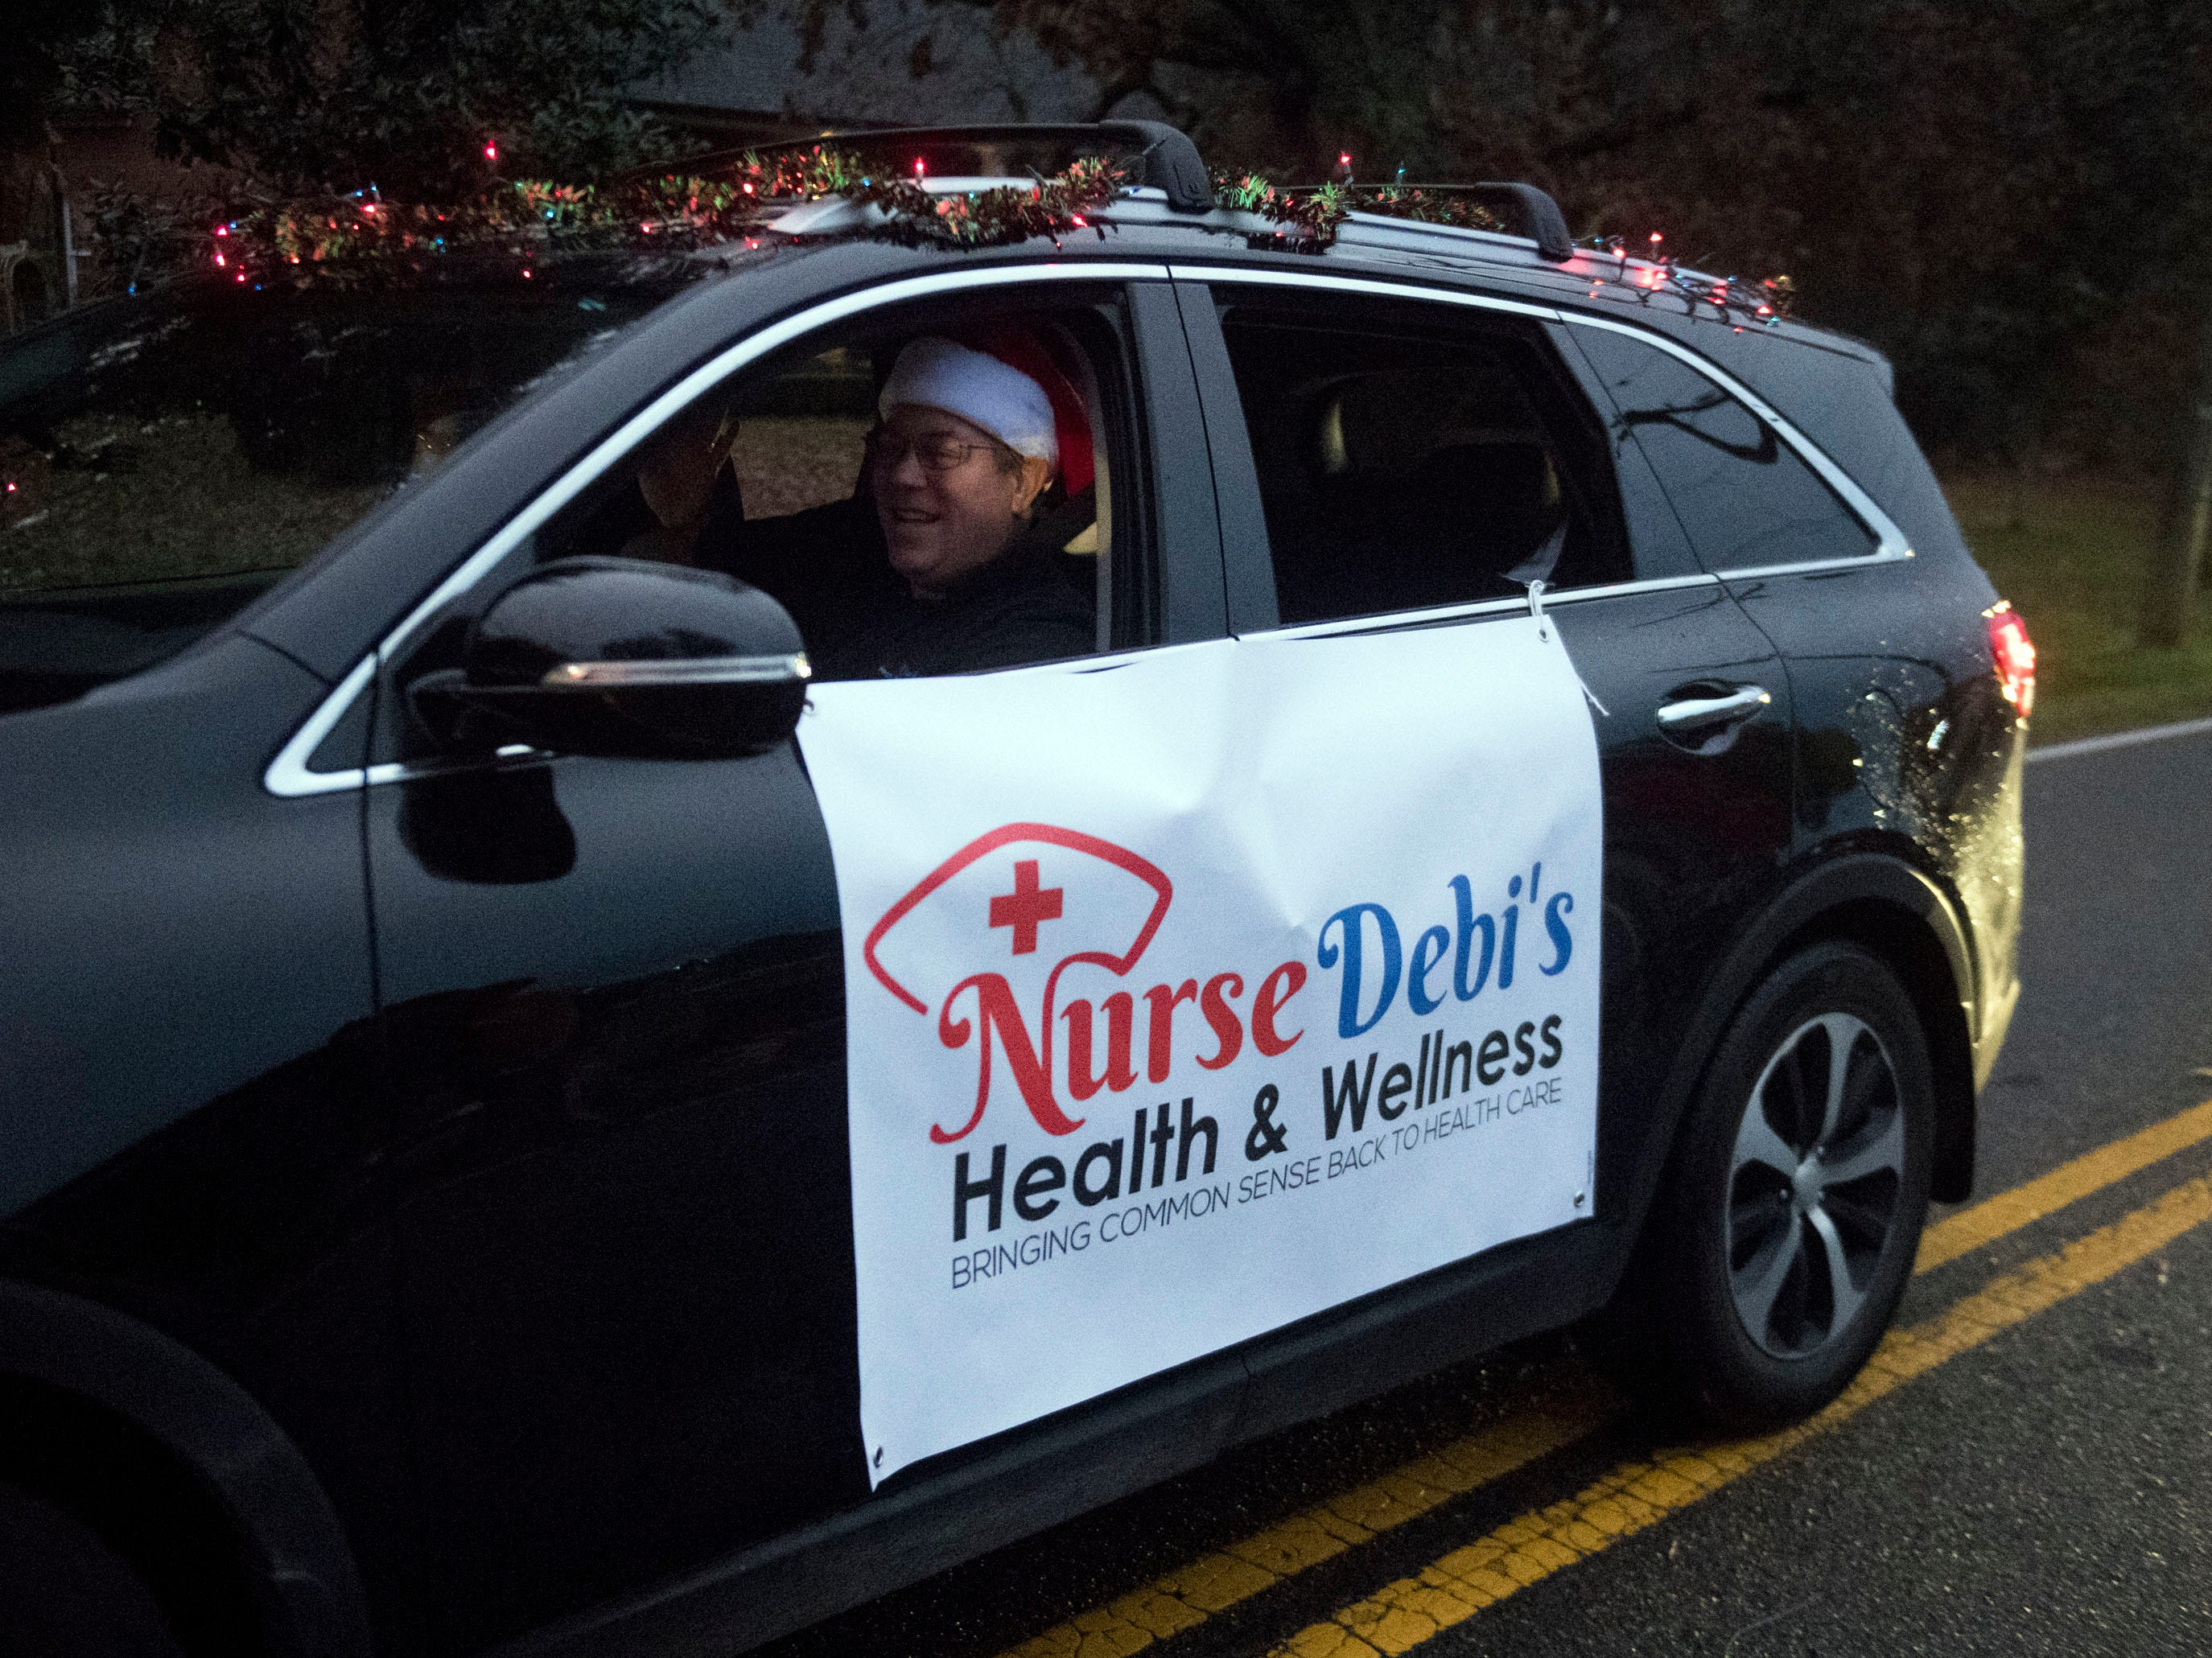 Nurse Debi's Health & Wellness in the Powell Lions Club Christmas Parade on Saturday, December 1, 2018.